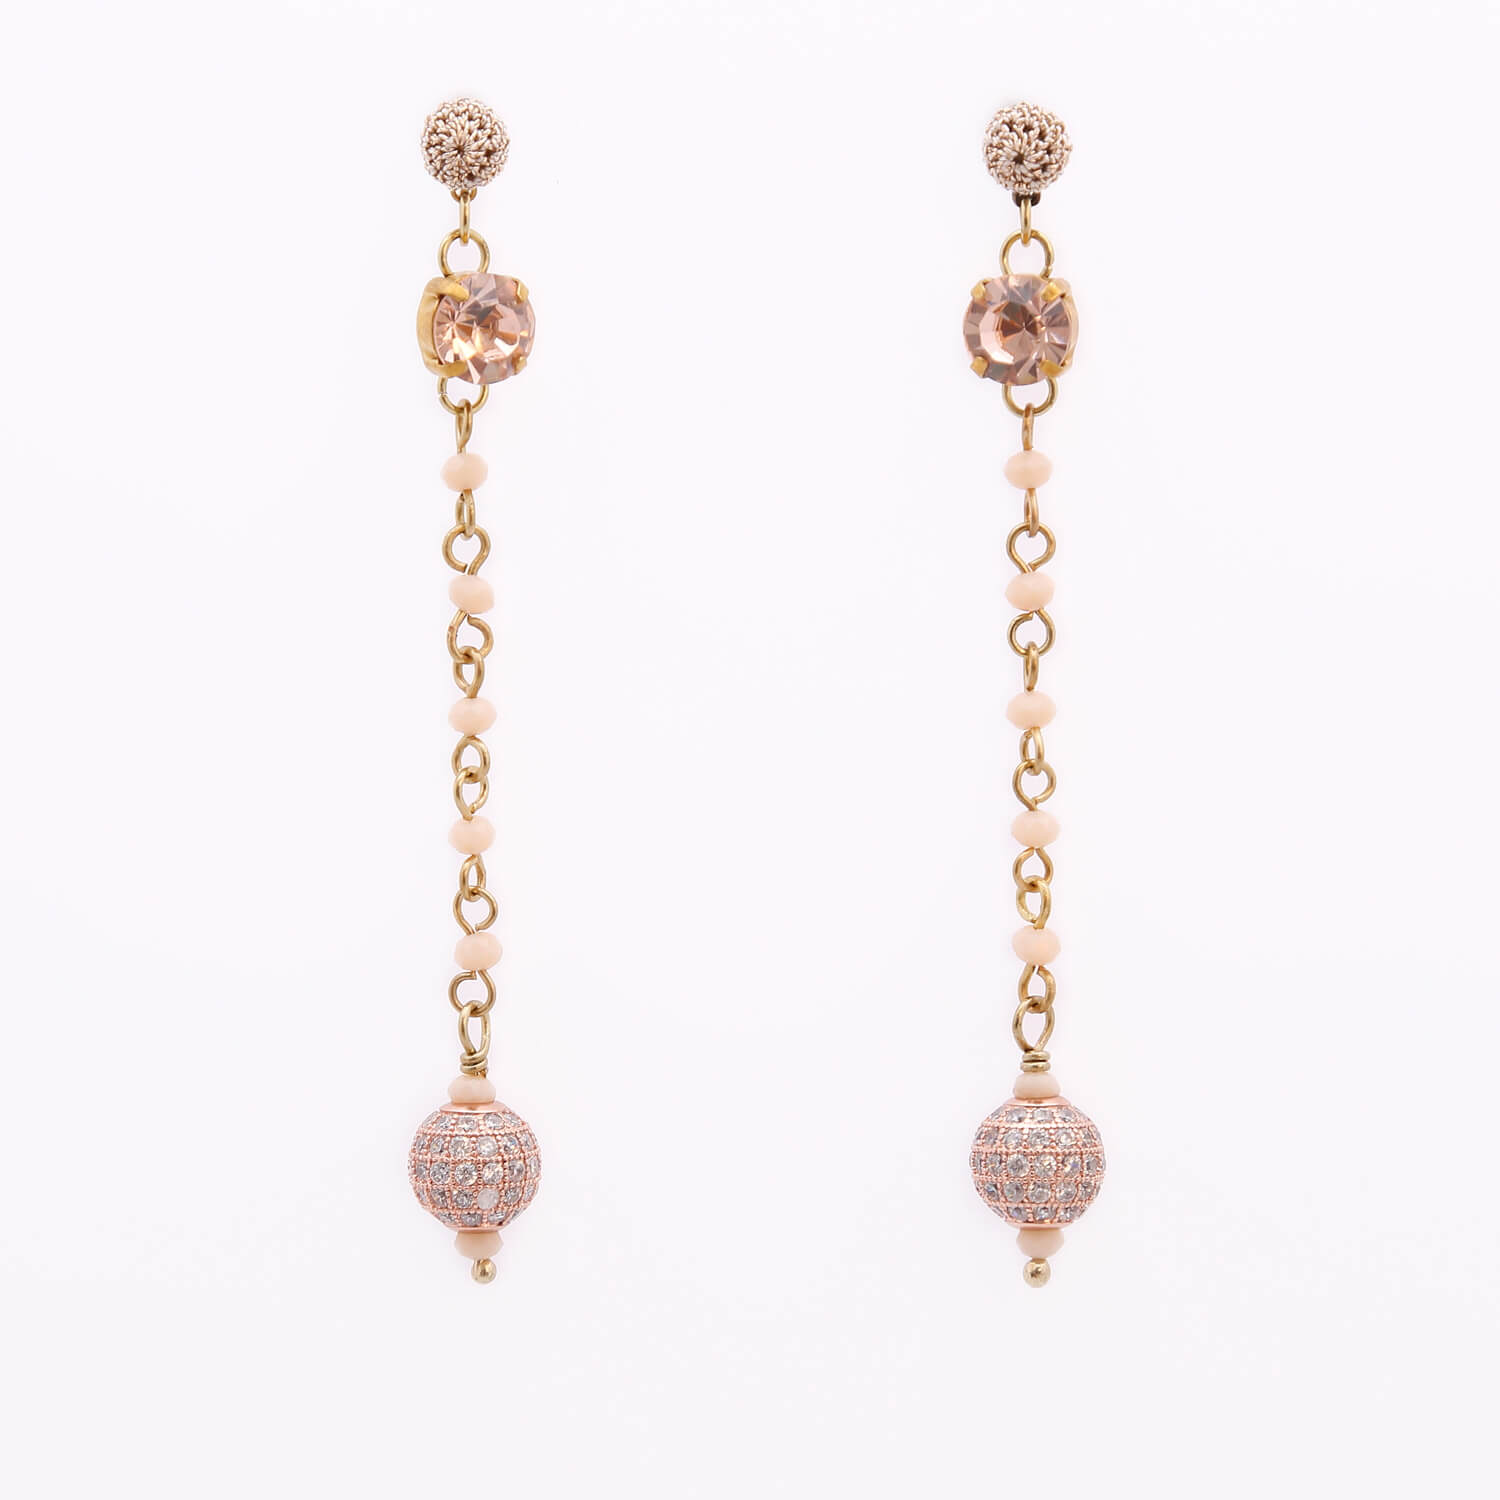 products earringg eve eva by earring celeste remenyi stud long leste c